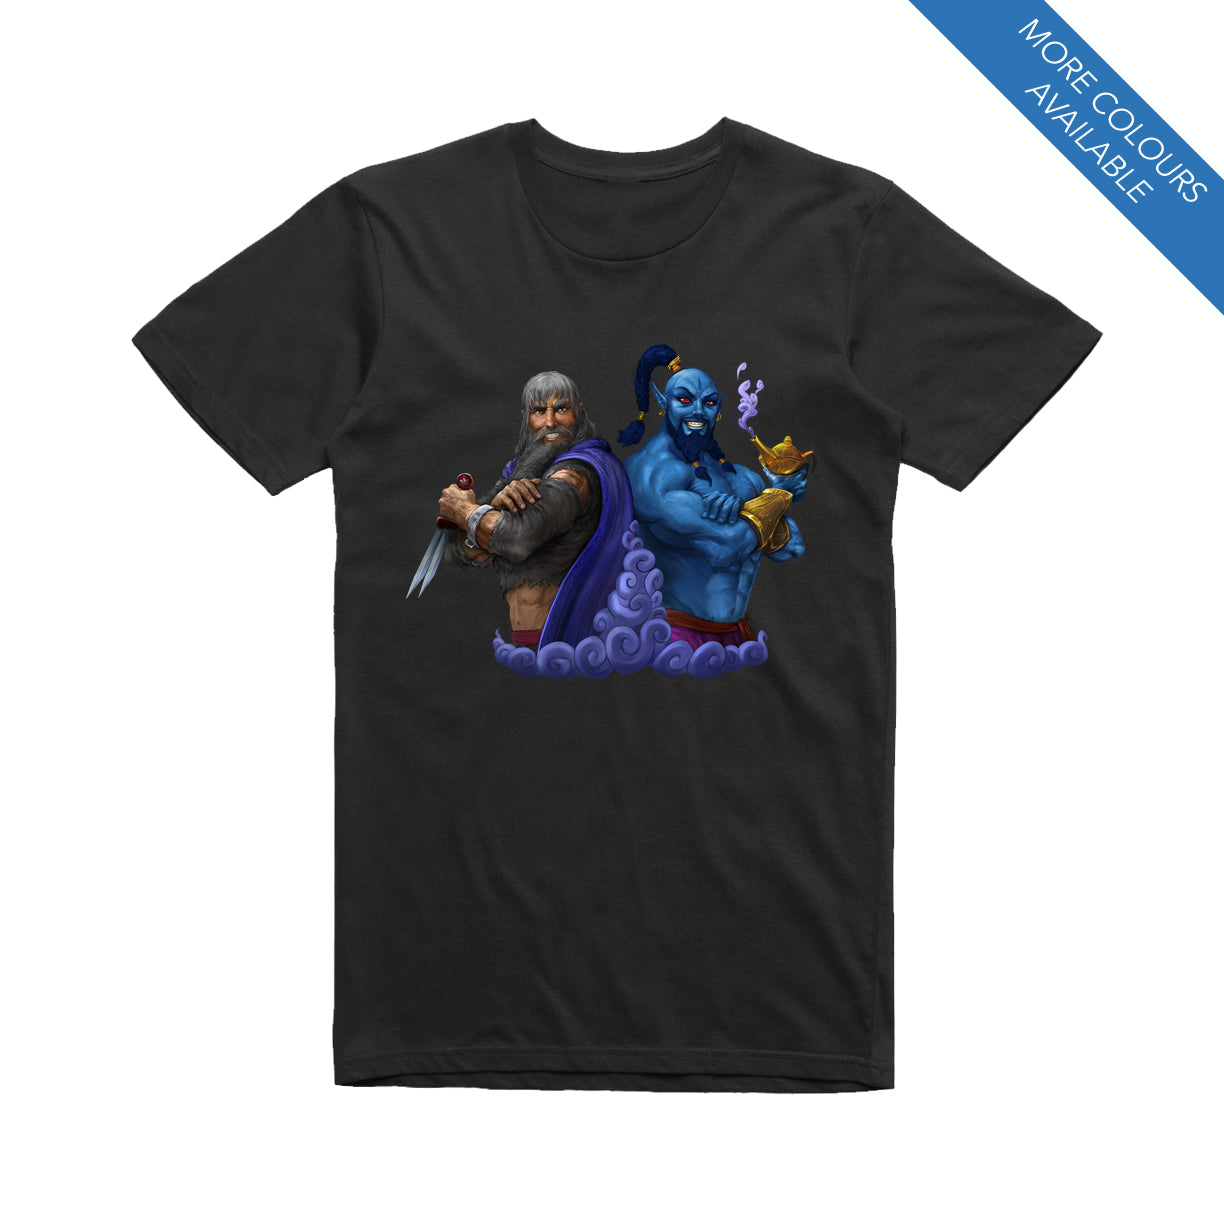 The Experience Brotherhood - T-Shirt